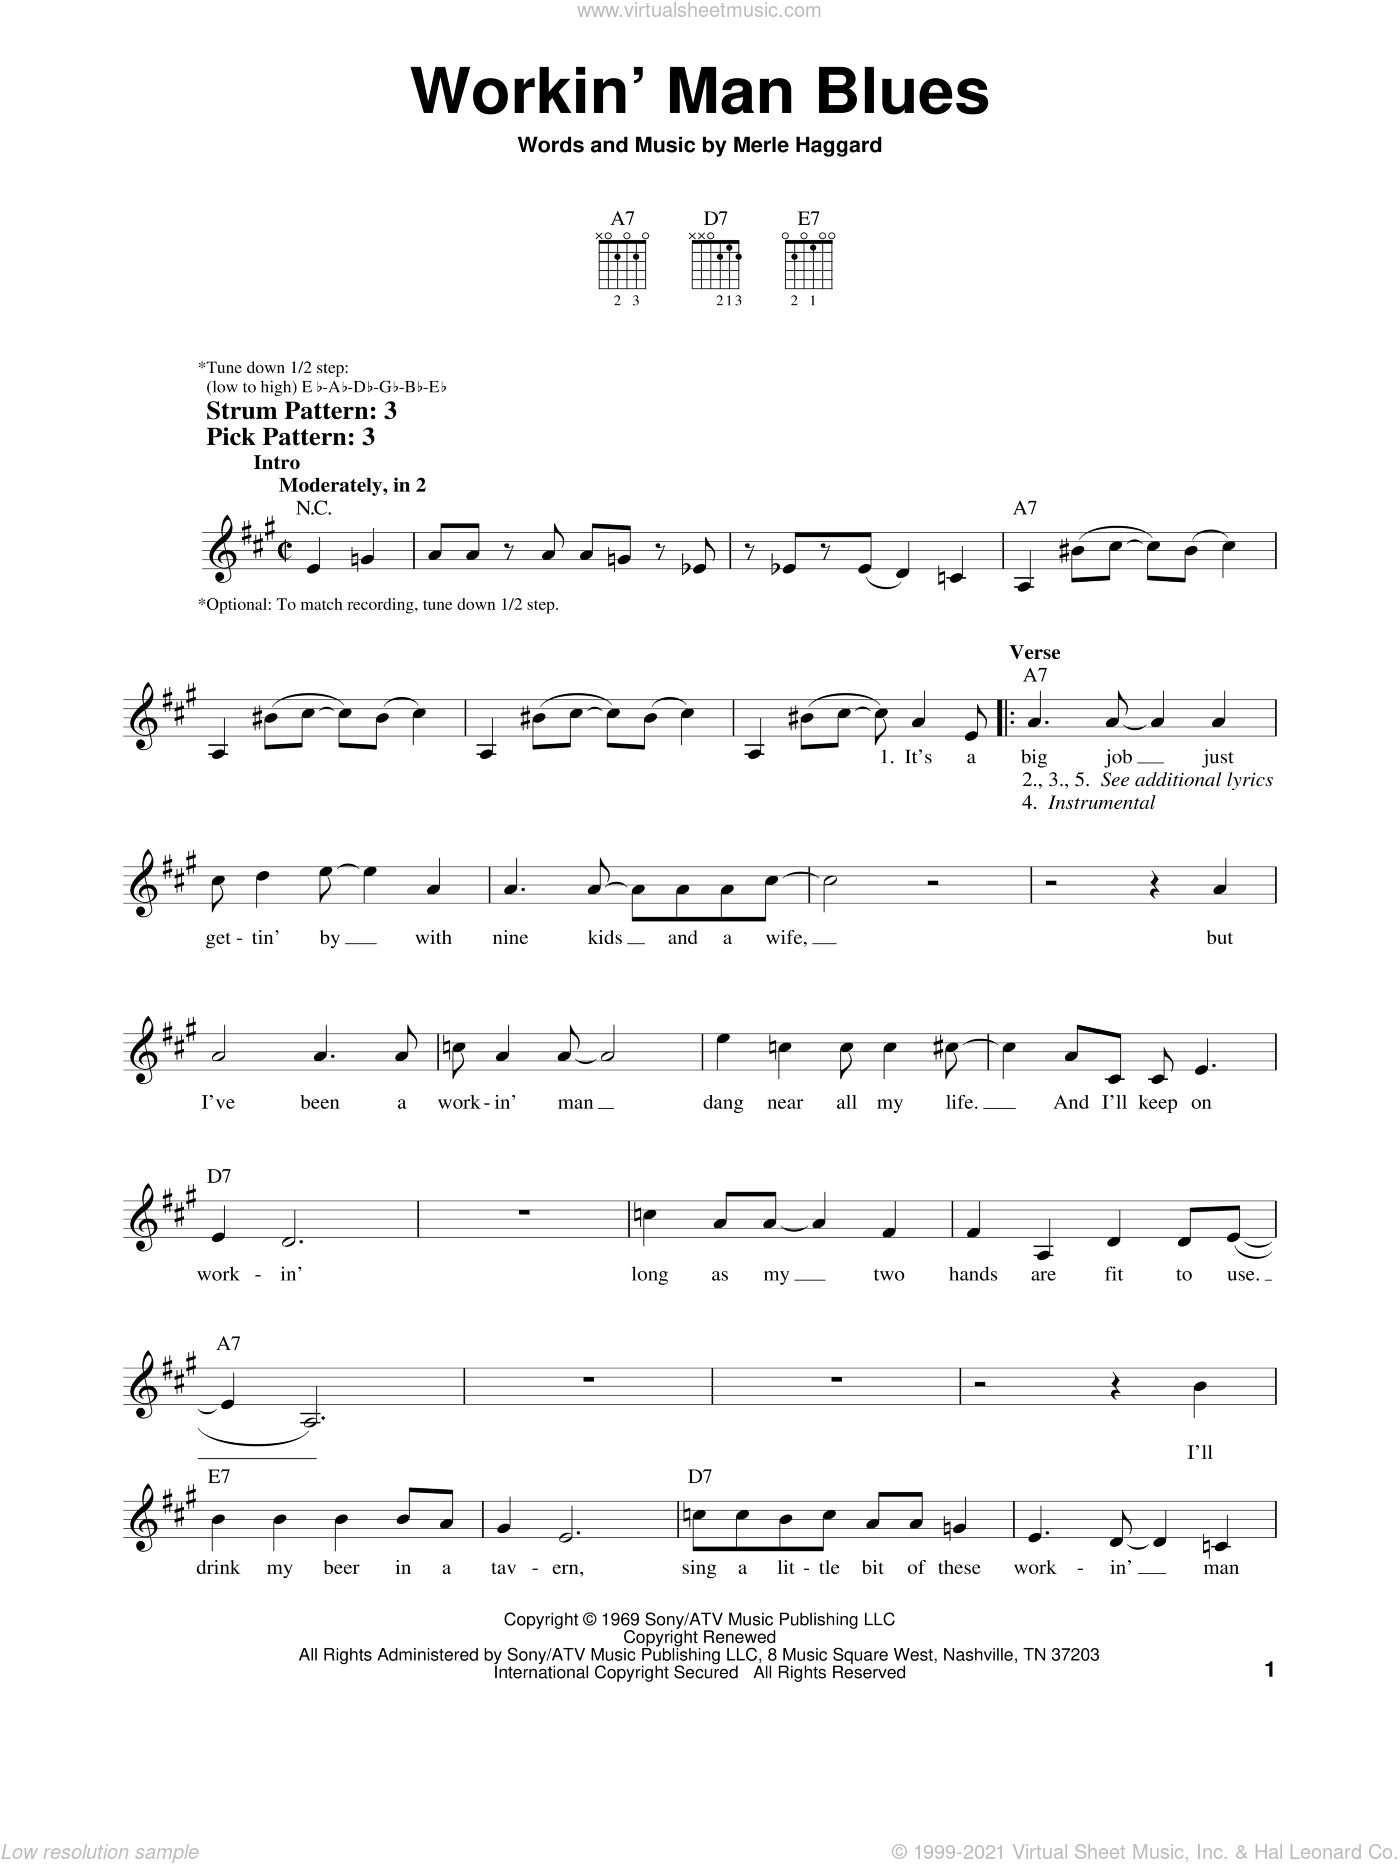 Workin' Man Blues sheet music for guitar solo (chords) by Merle Haggard. Score Image Preview.